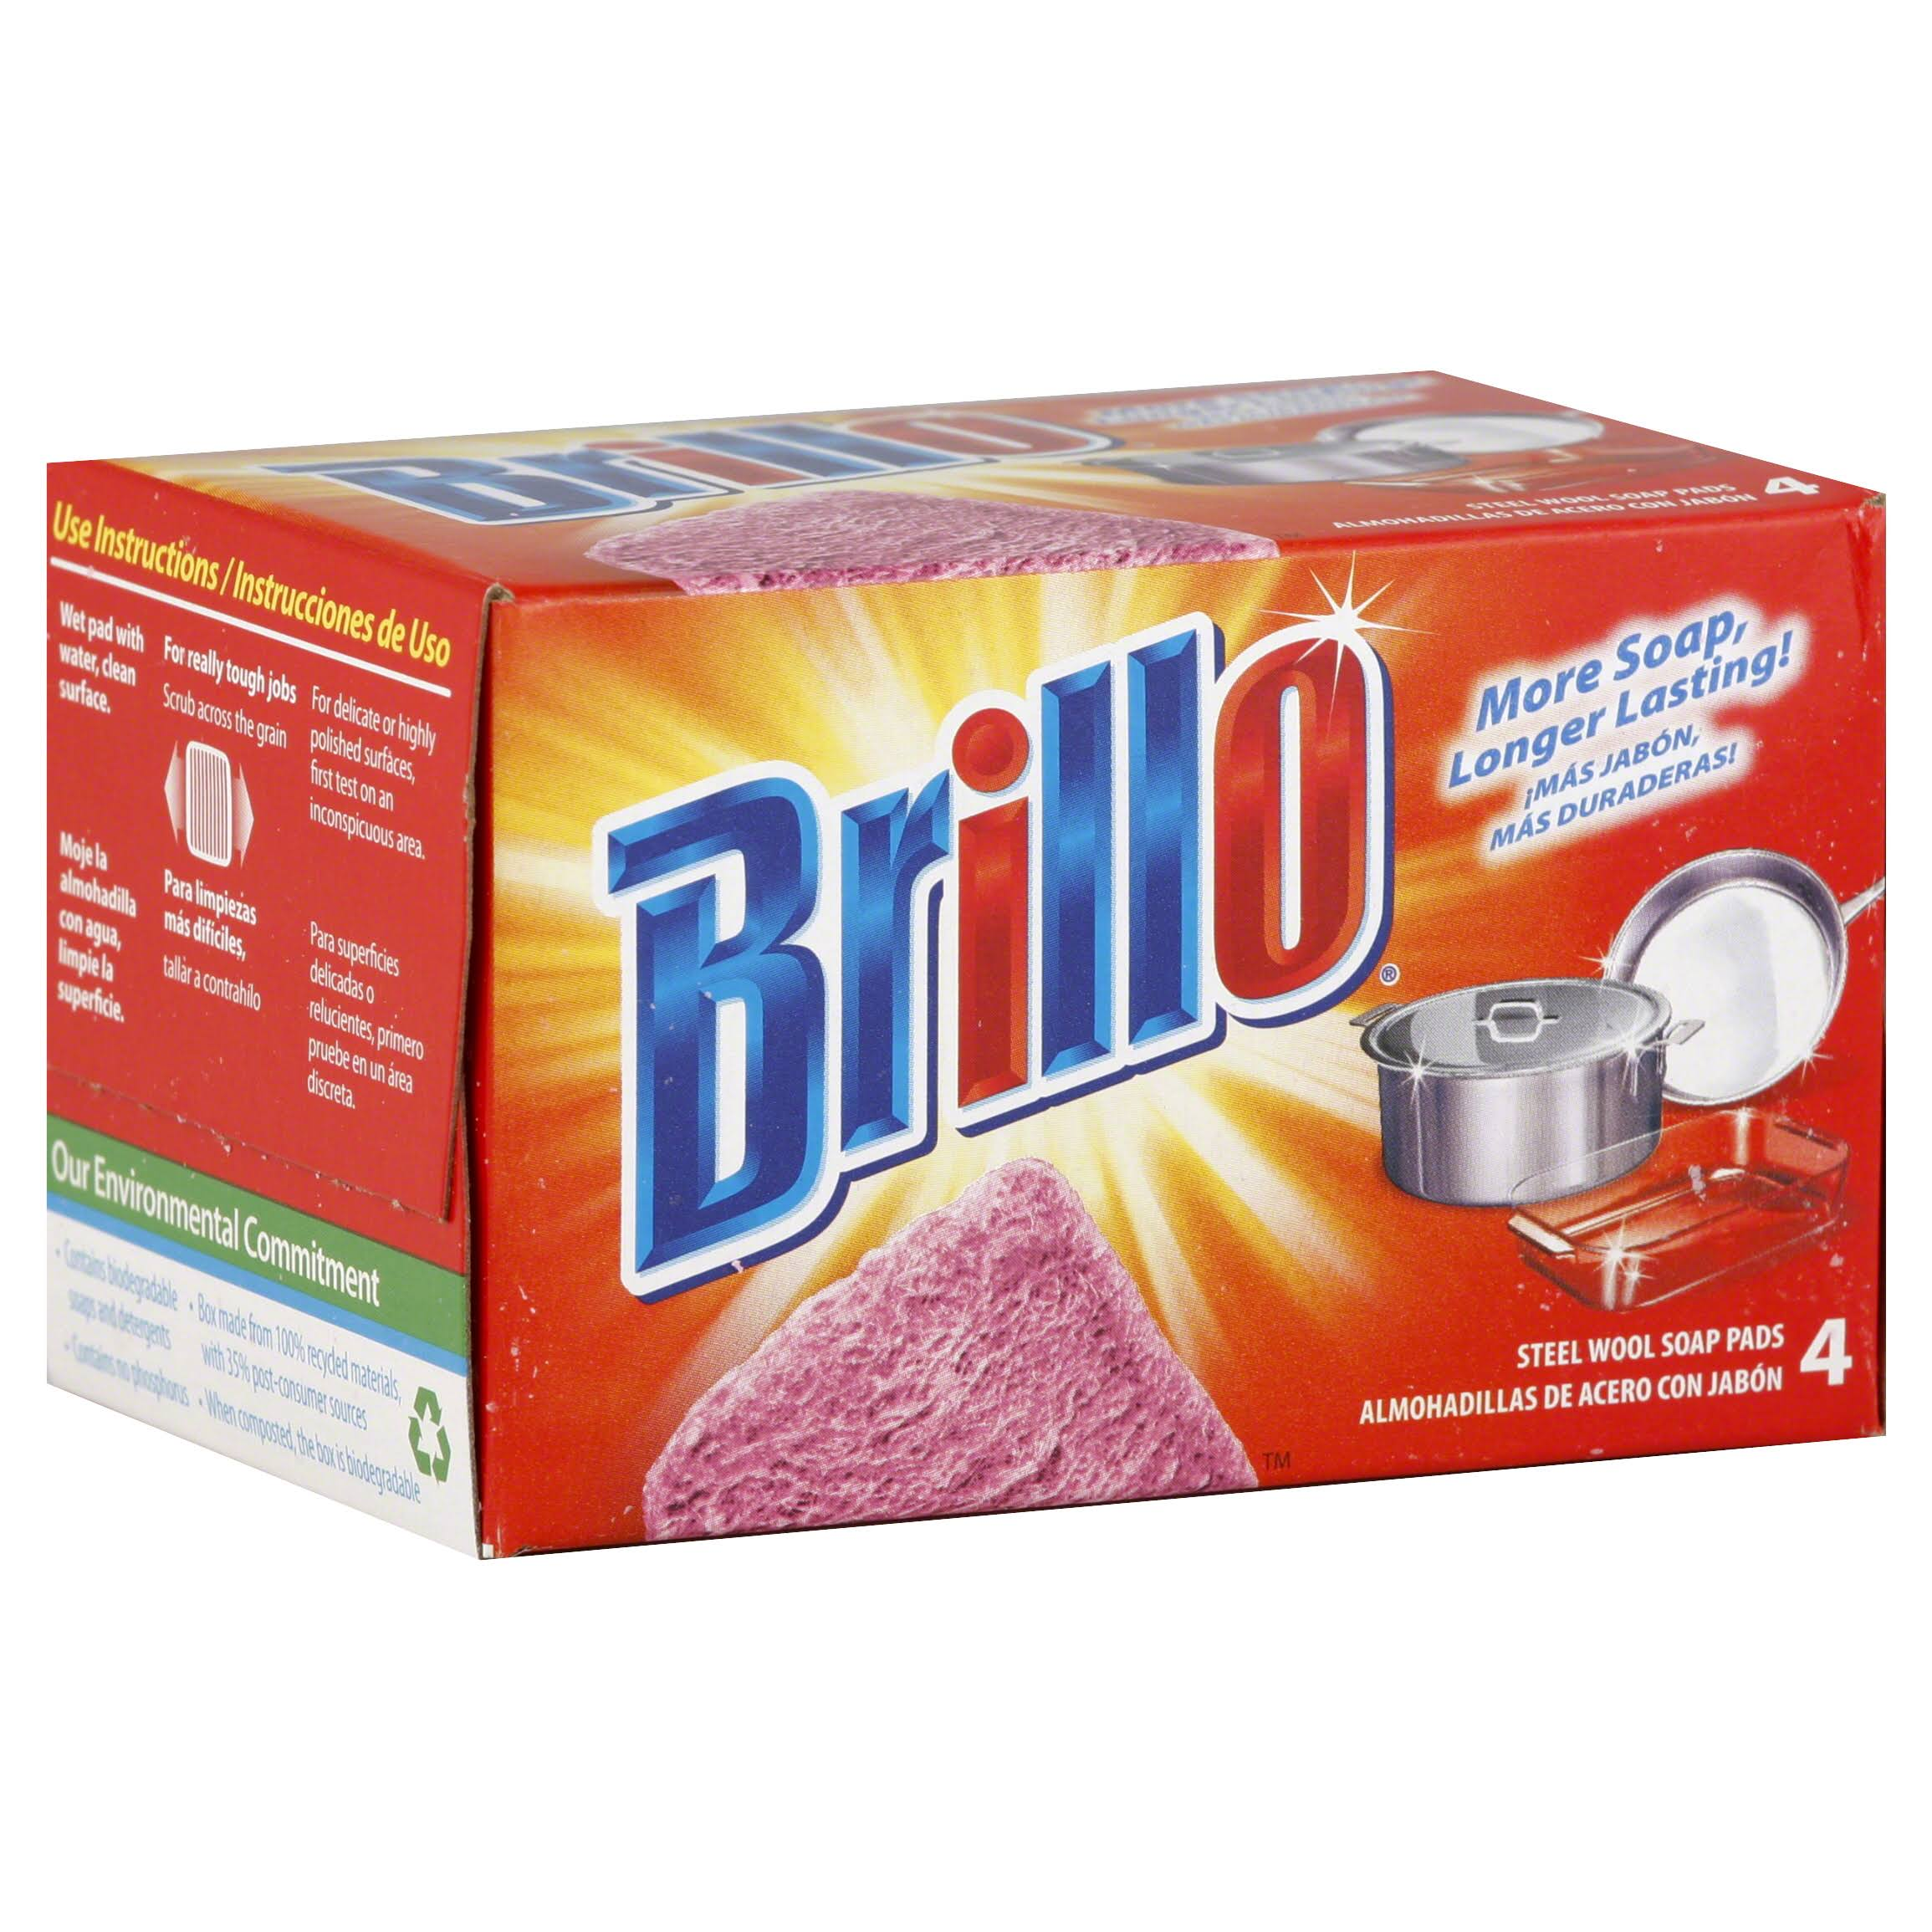 Brillo Steel Wool Soap Pads - Red, 4 ct